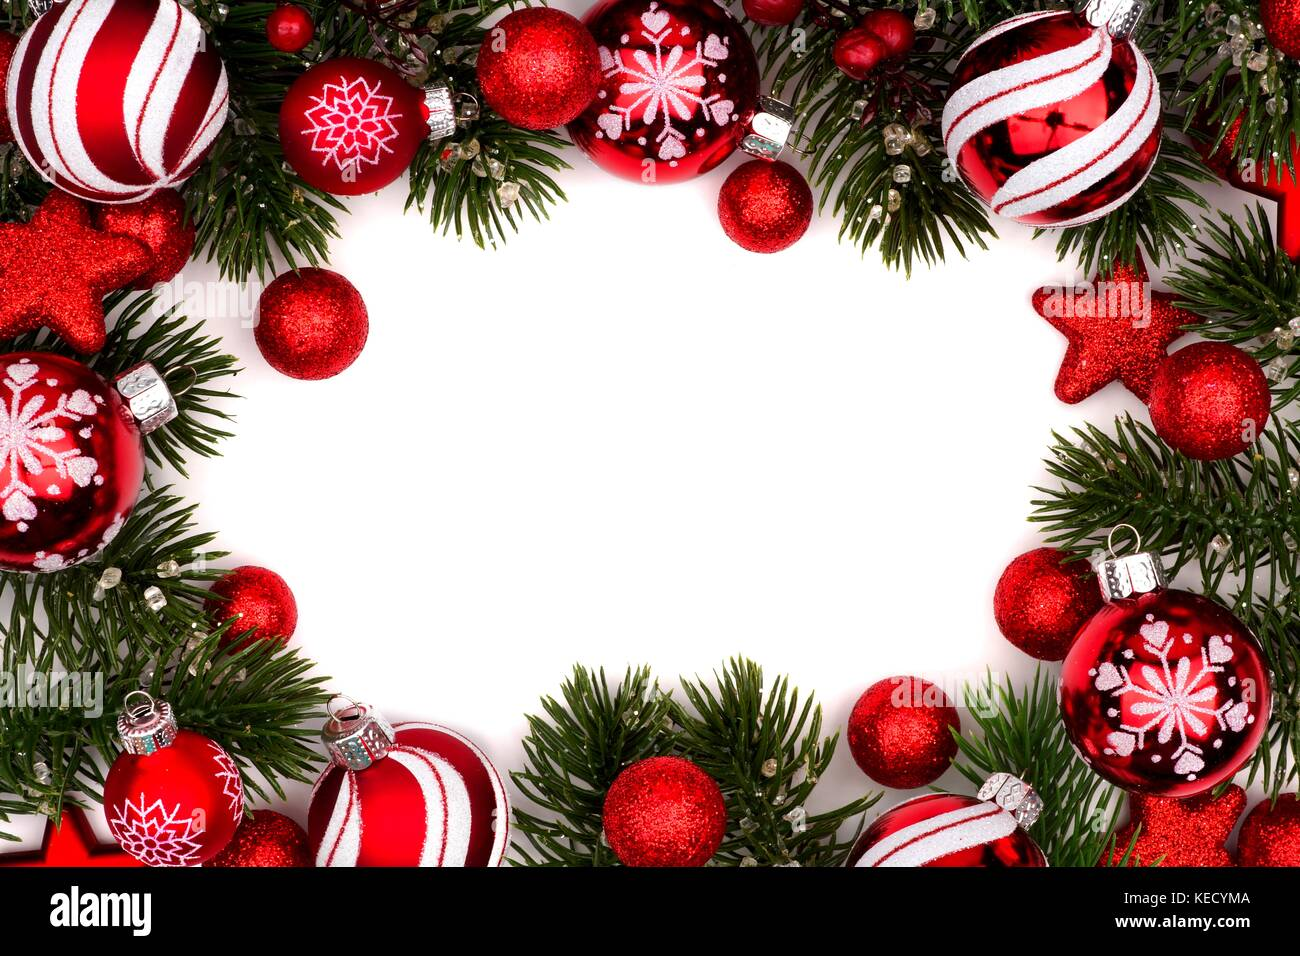 Christmas frame of red and white baubles with branches isolated on a ...